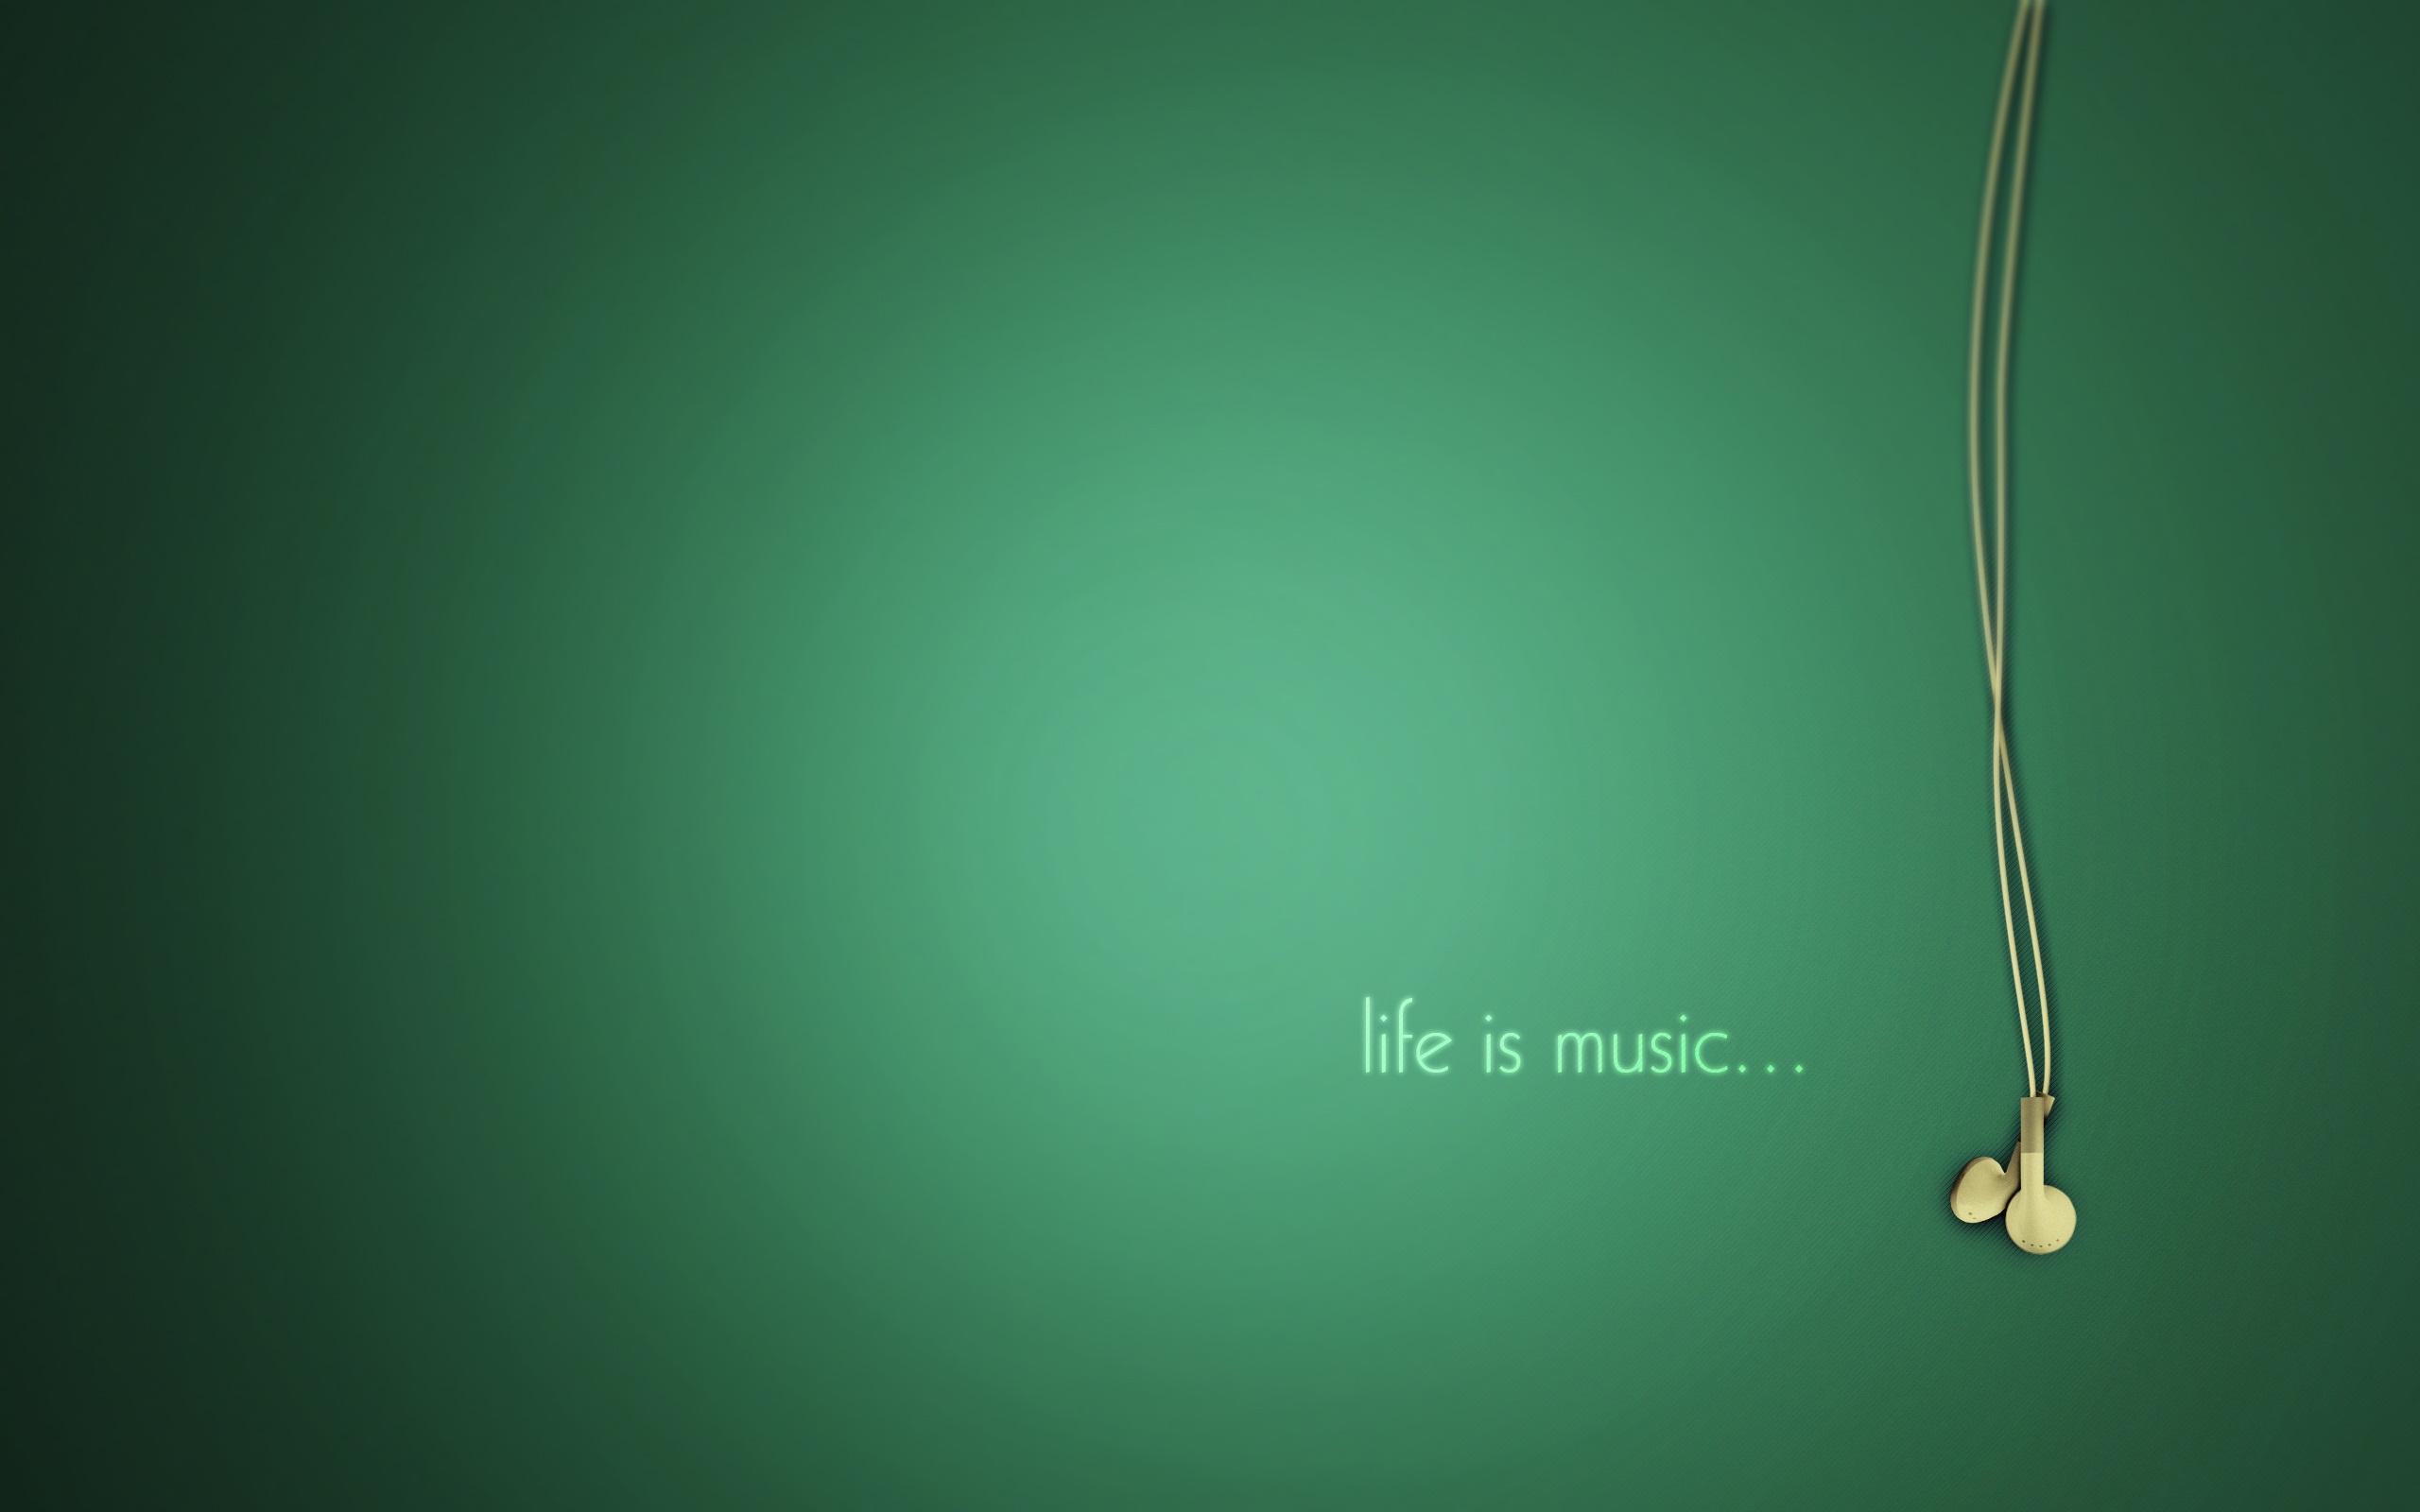 music wallpaper green